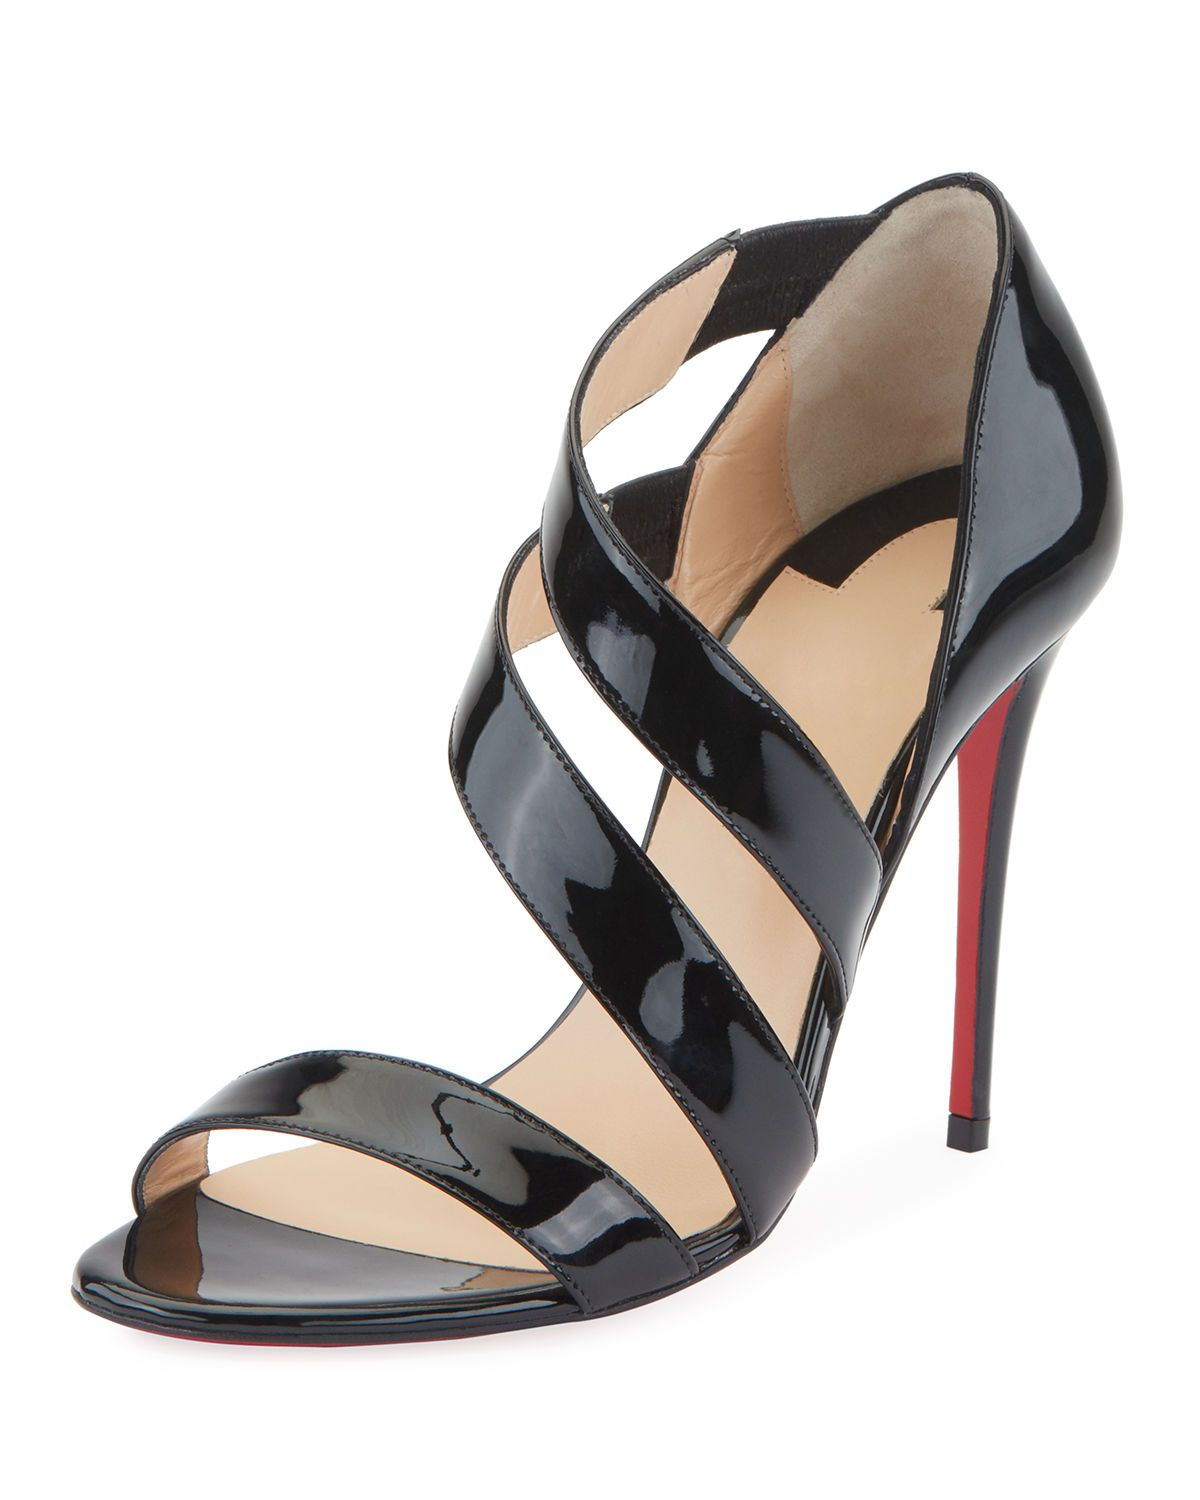 6e2562ab2e Christian Louboutin World Copine Red Sole Pumps in 2019 | Louboutin ...